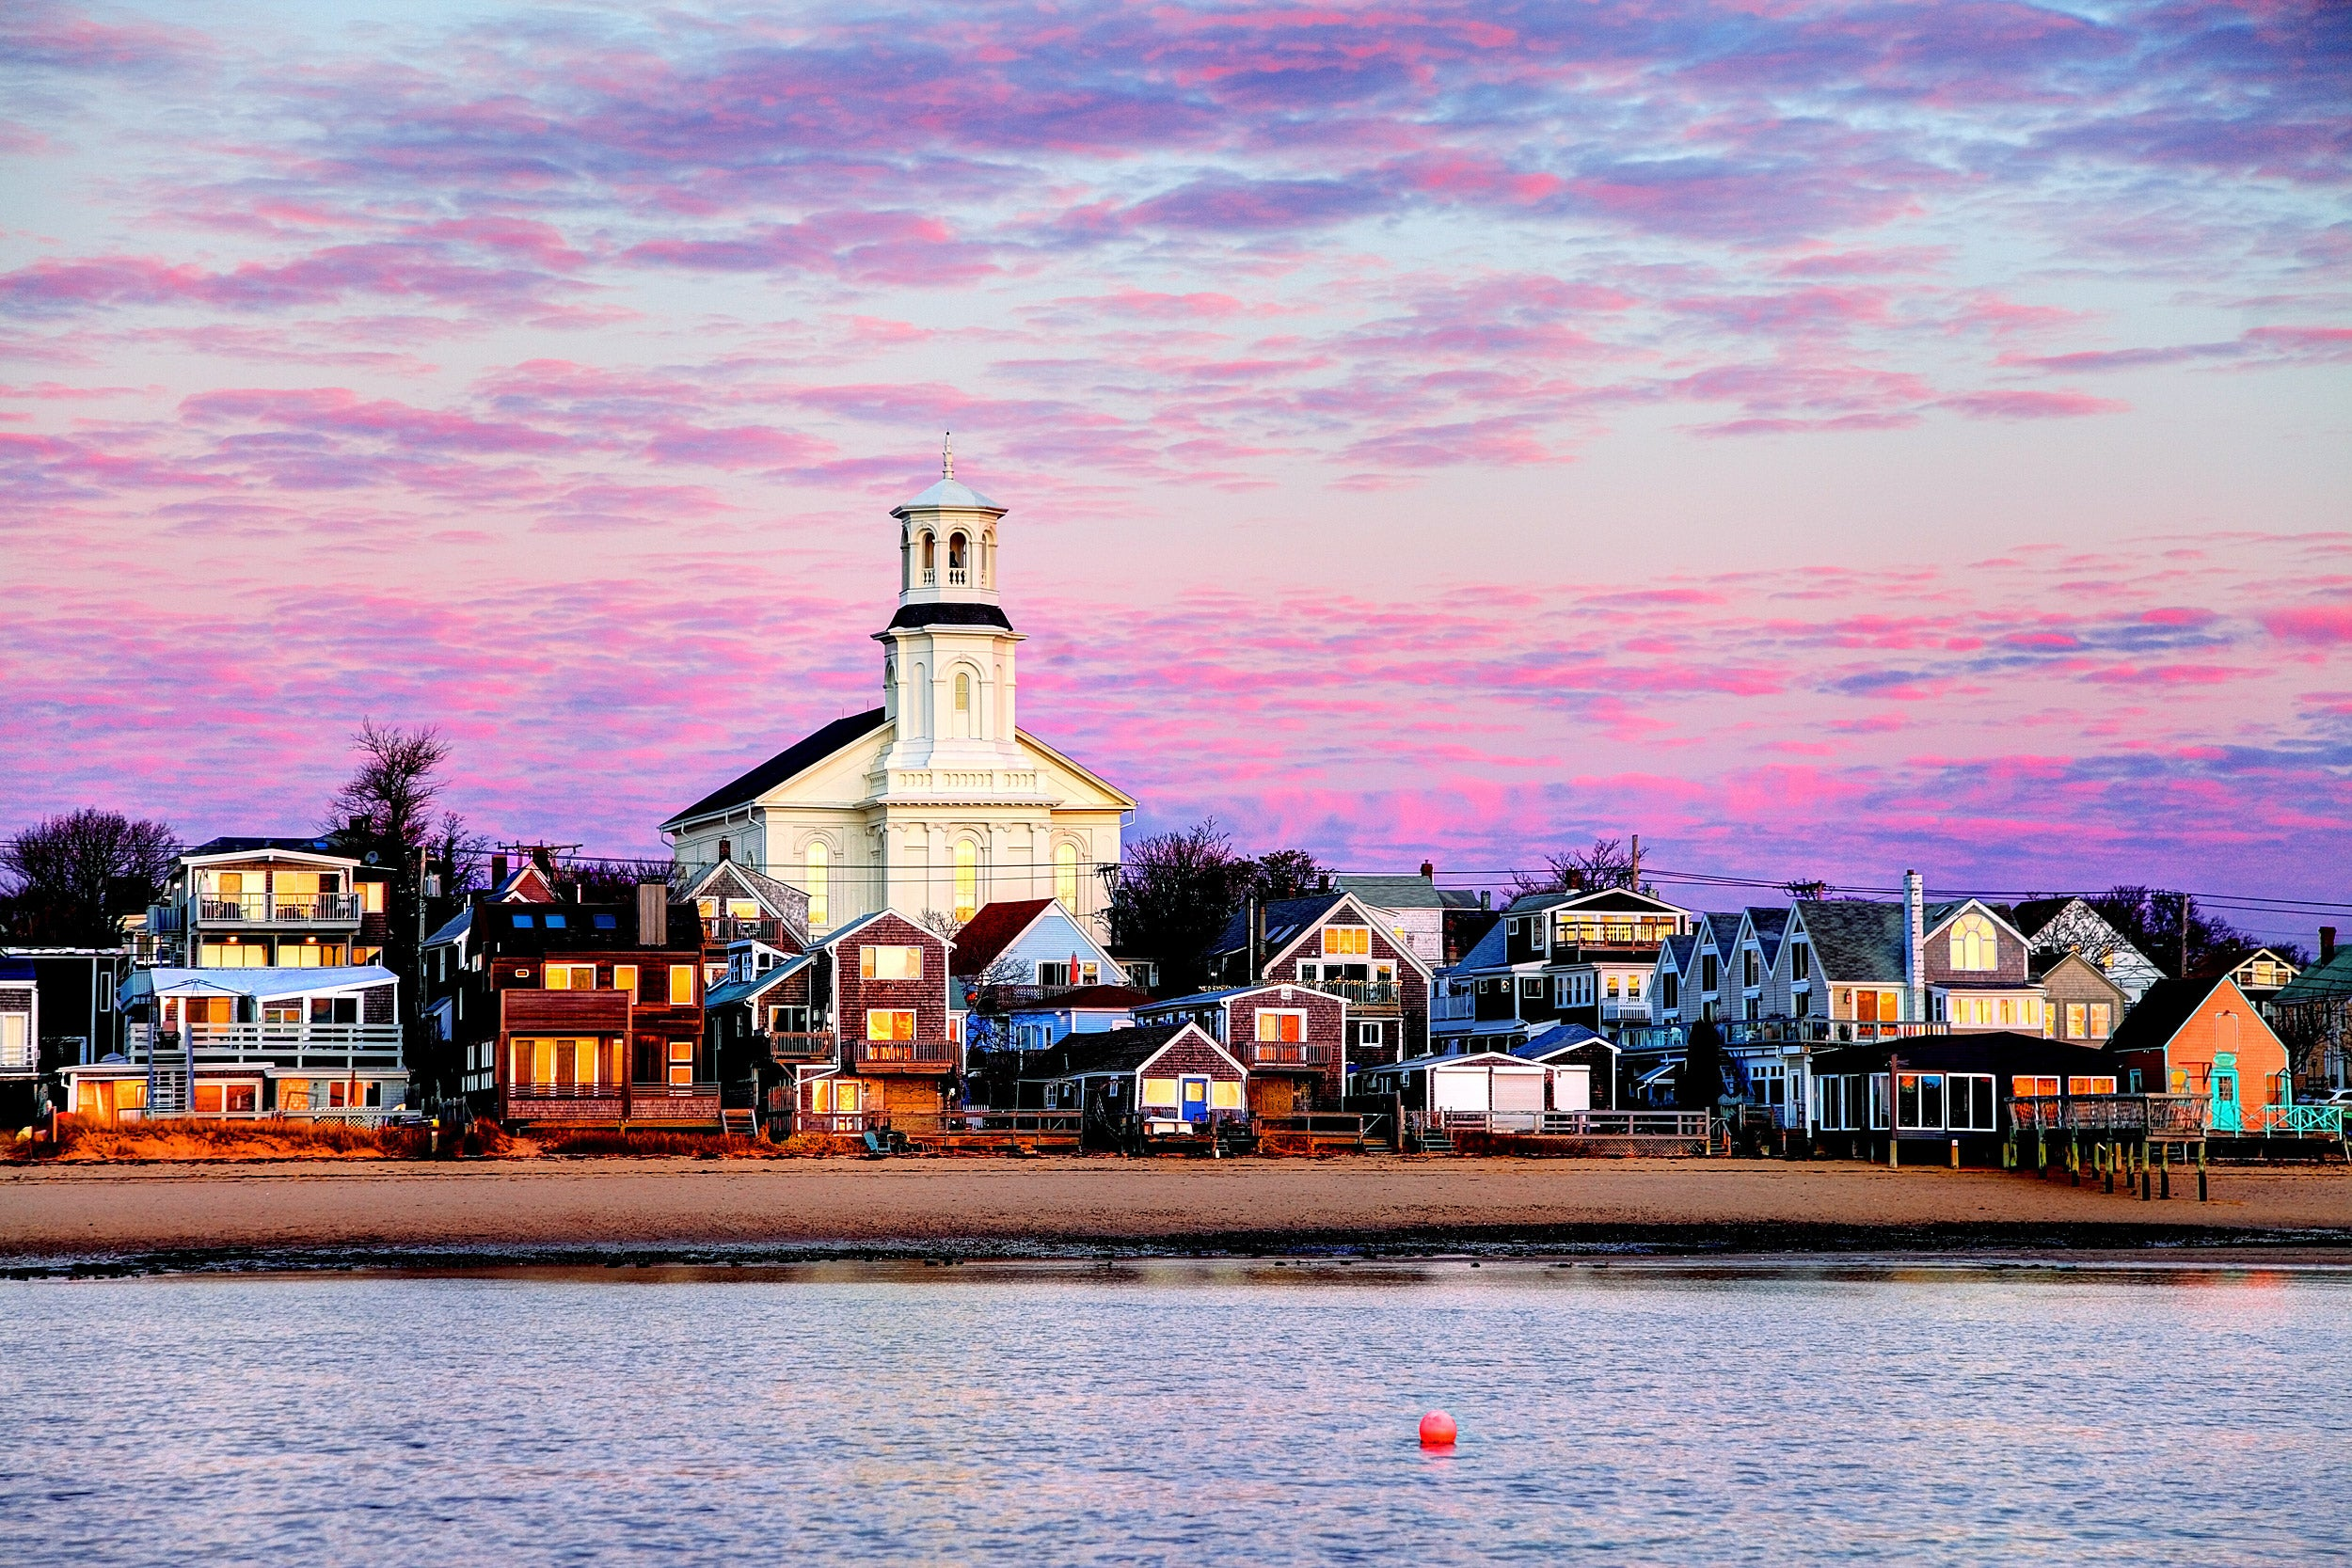 GSD students mull how to protect Provincetown while retaining its charm